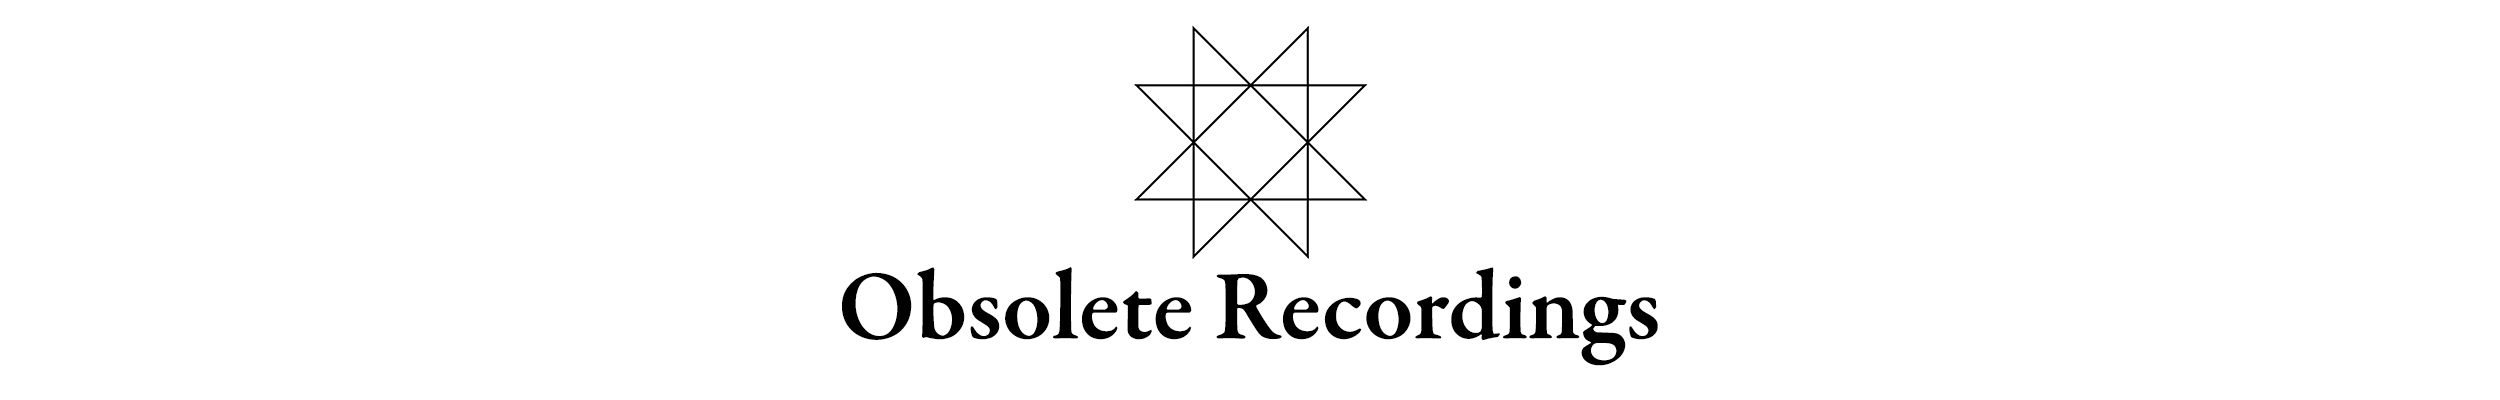 Obsolete Recordings